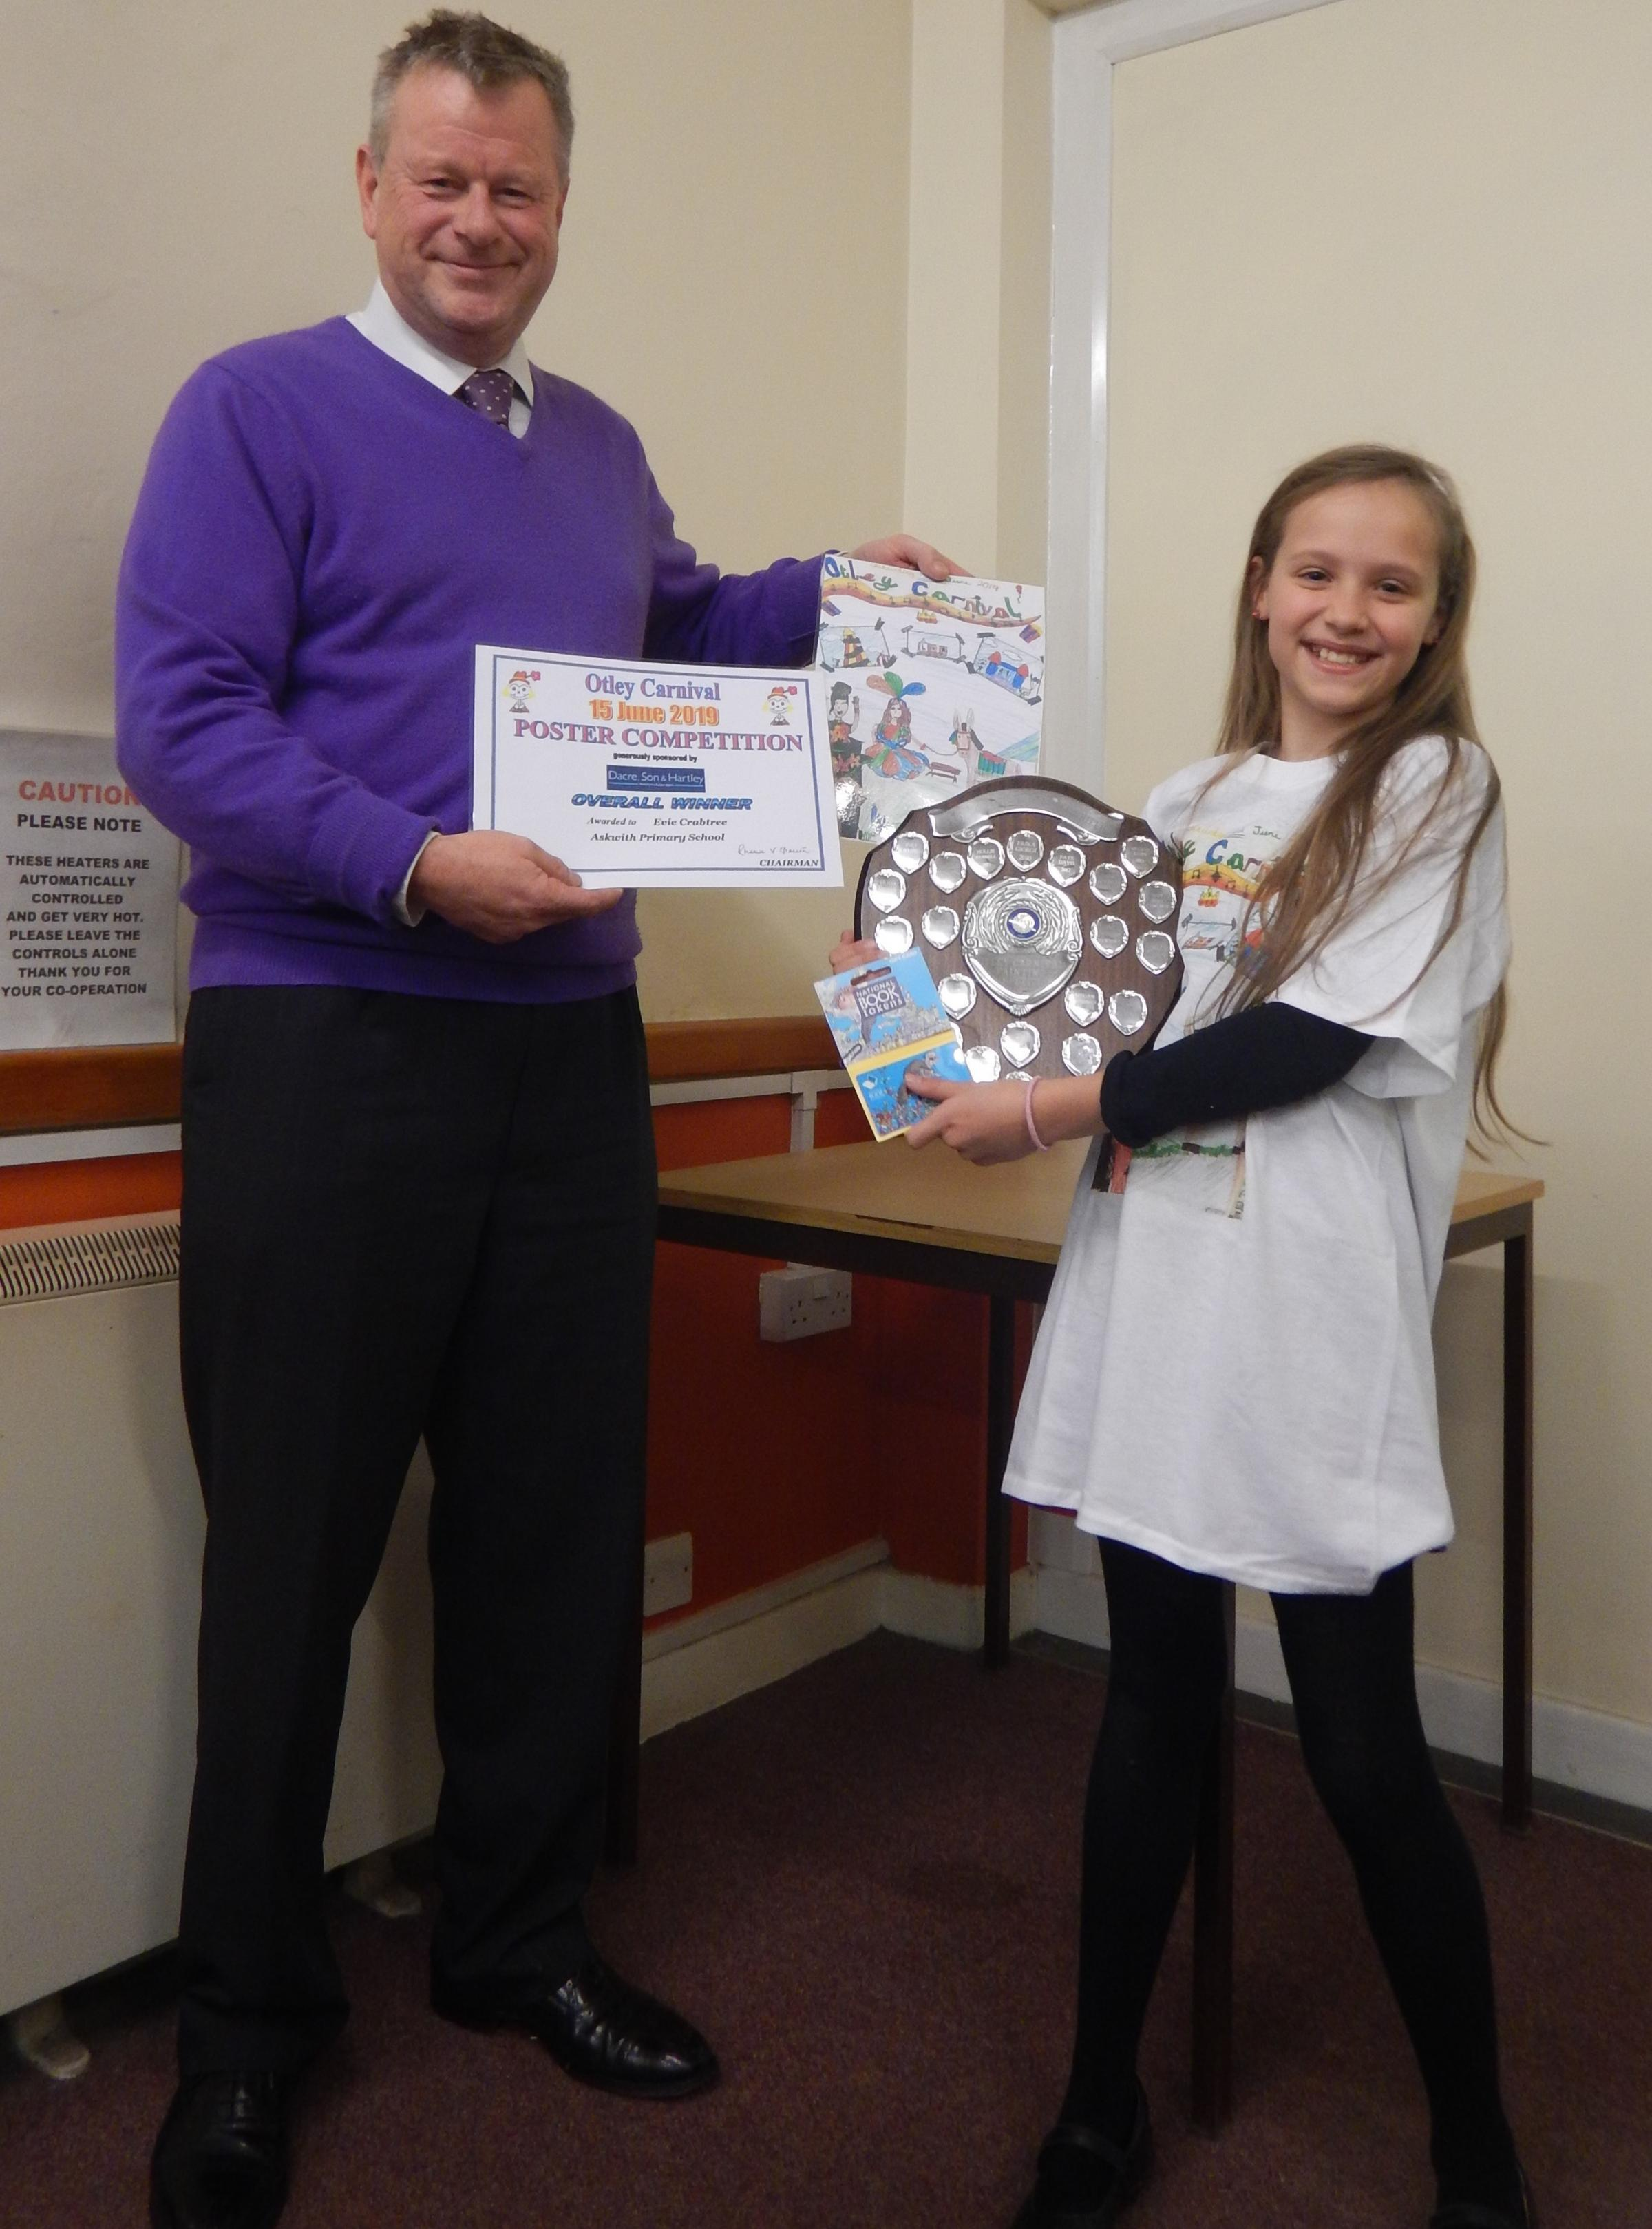 Tim Usherwood of Dacre Son & Hartley presenting Otley Carnival Poster Competition winner Evie Crabtree with her prizes